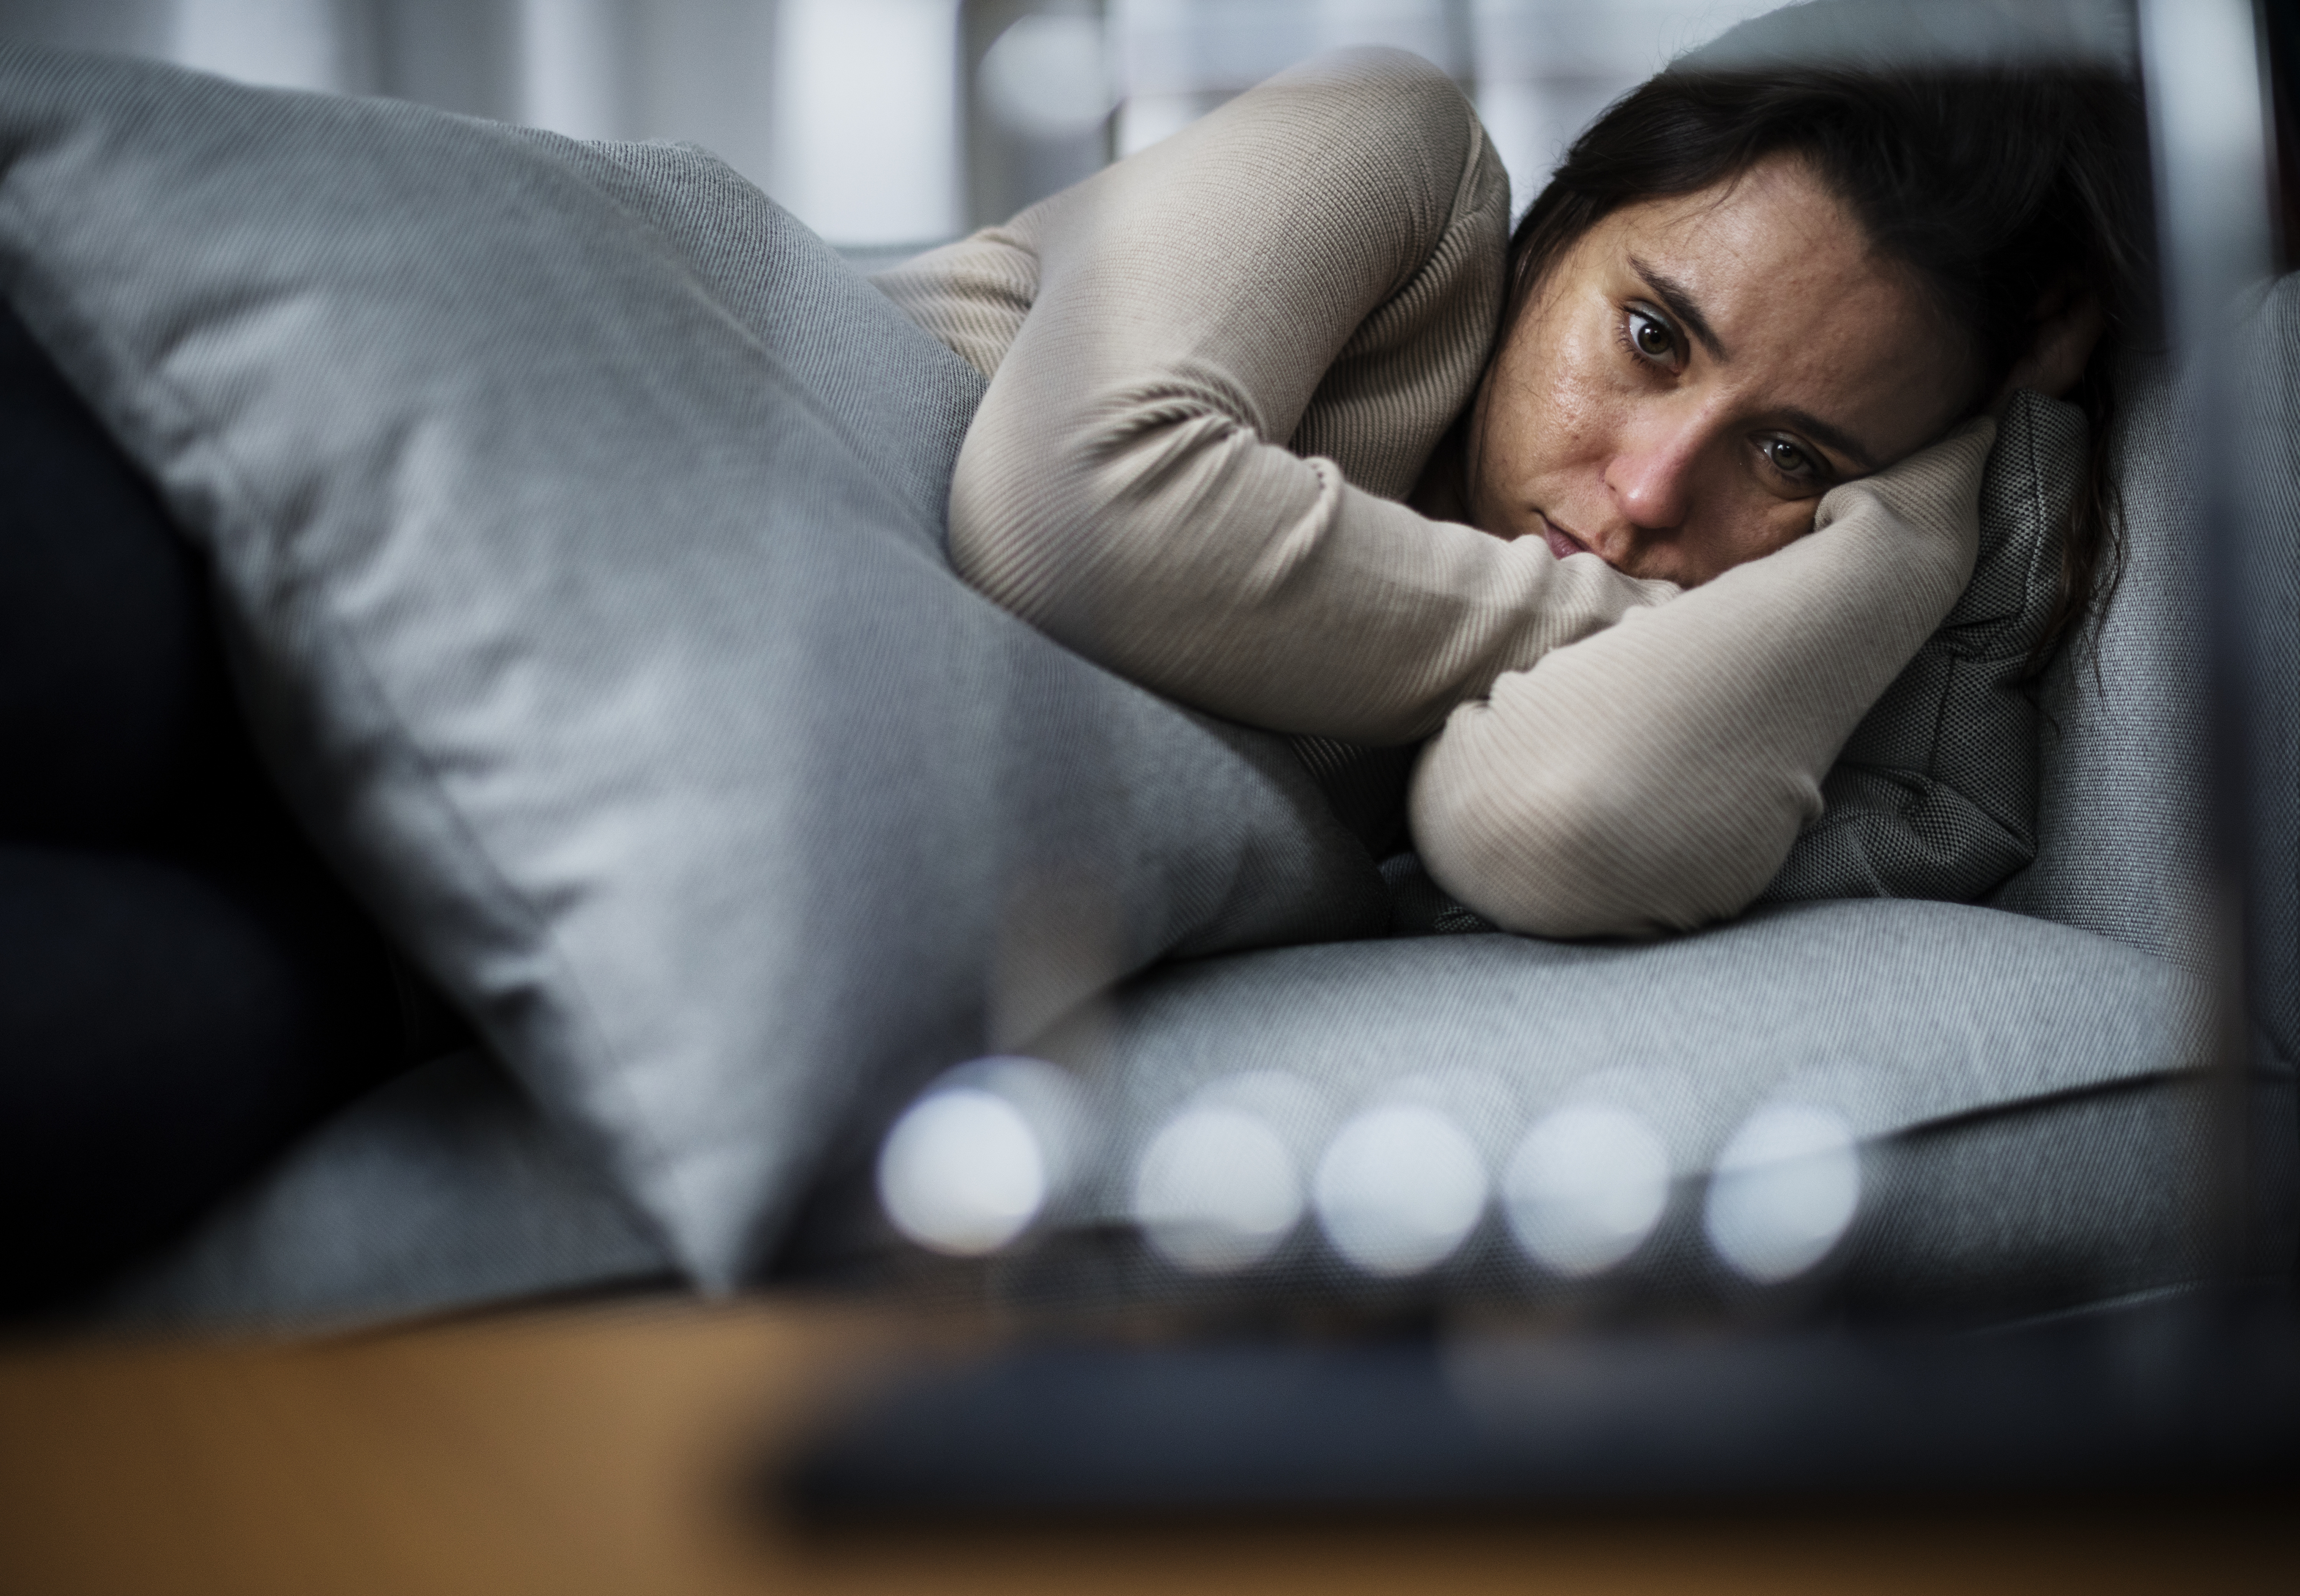 woman lying on couch looking distraught